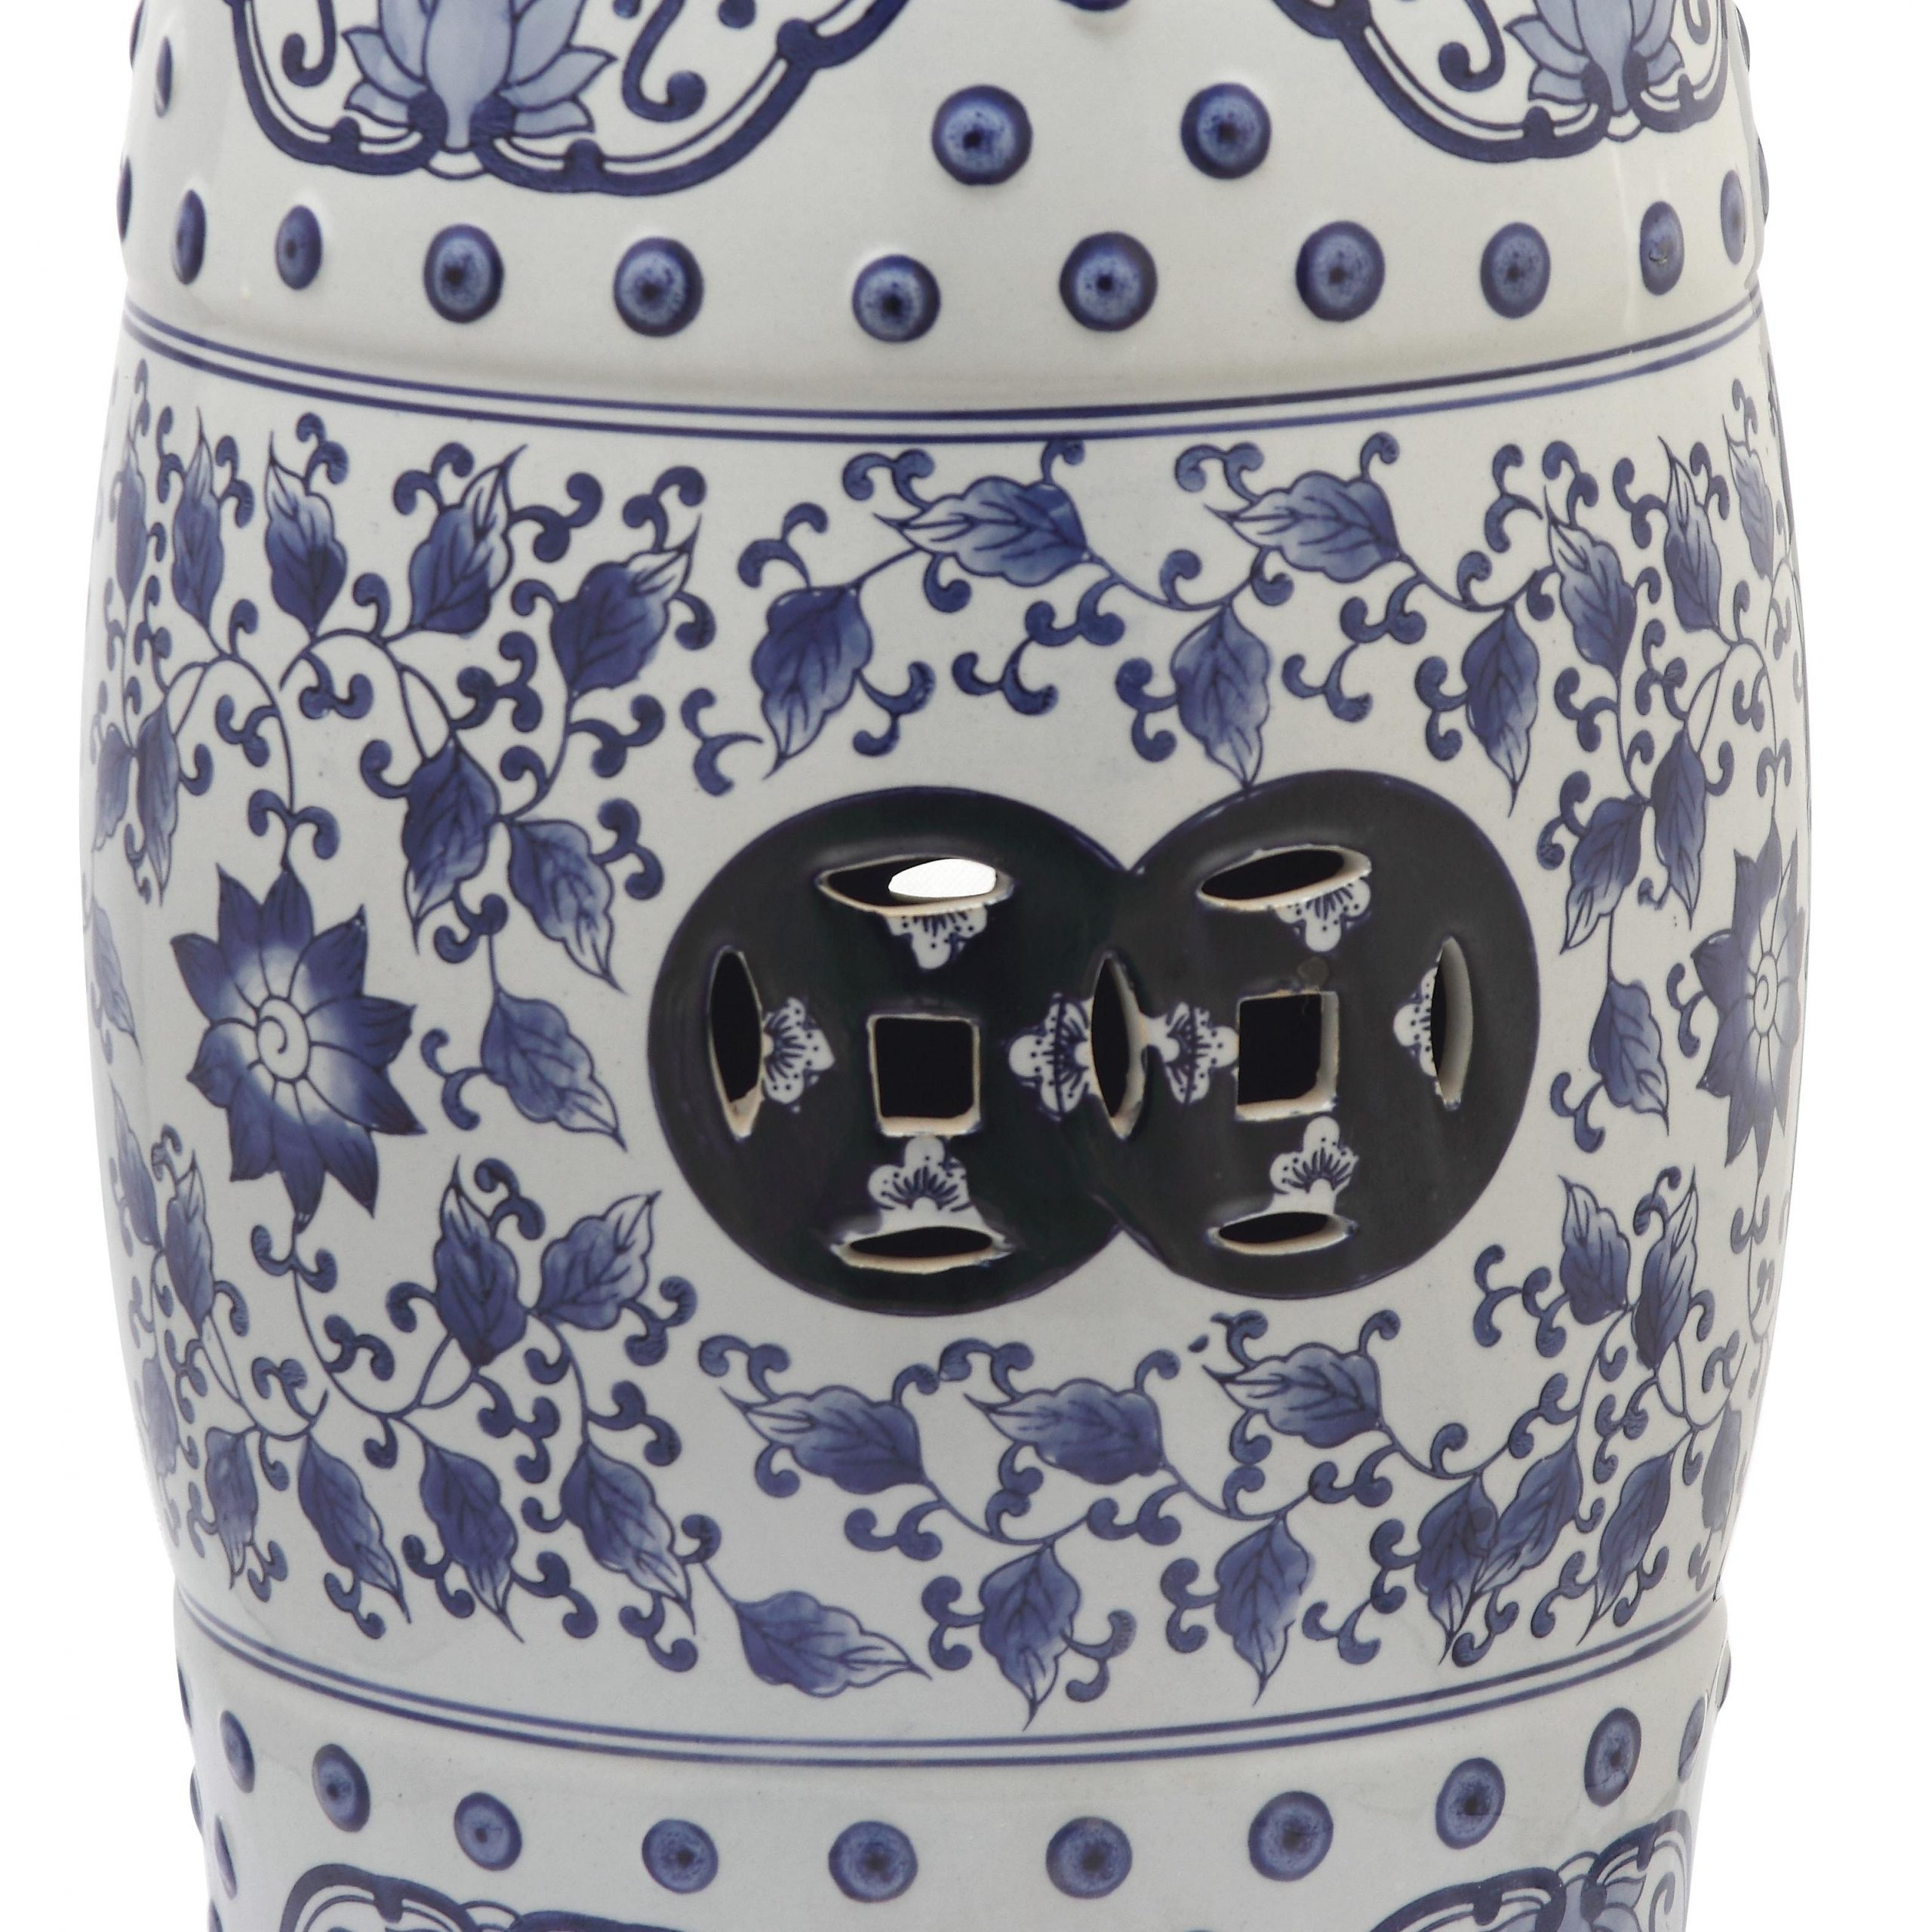 Murphy Ceramic Garden Stool Within Most Up To Date Irwin Blossom Garden Stools (View 3 of 30)